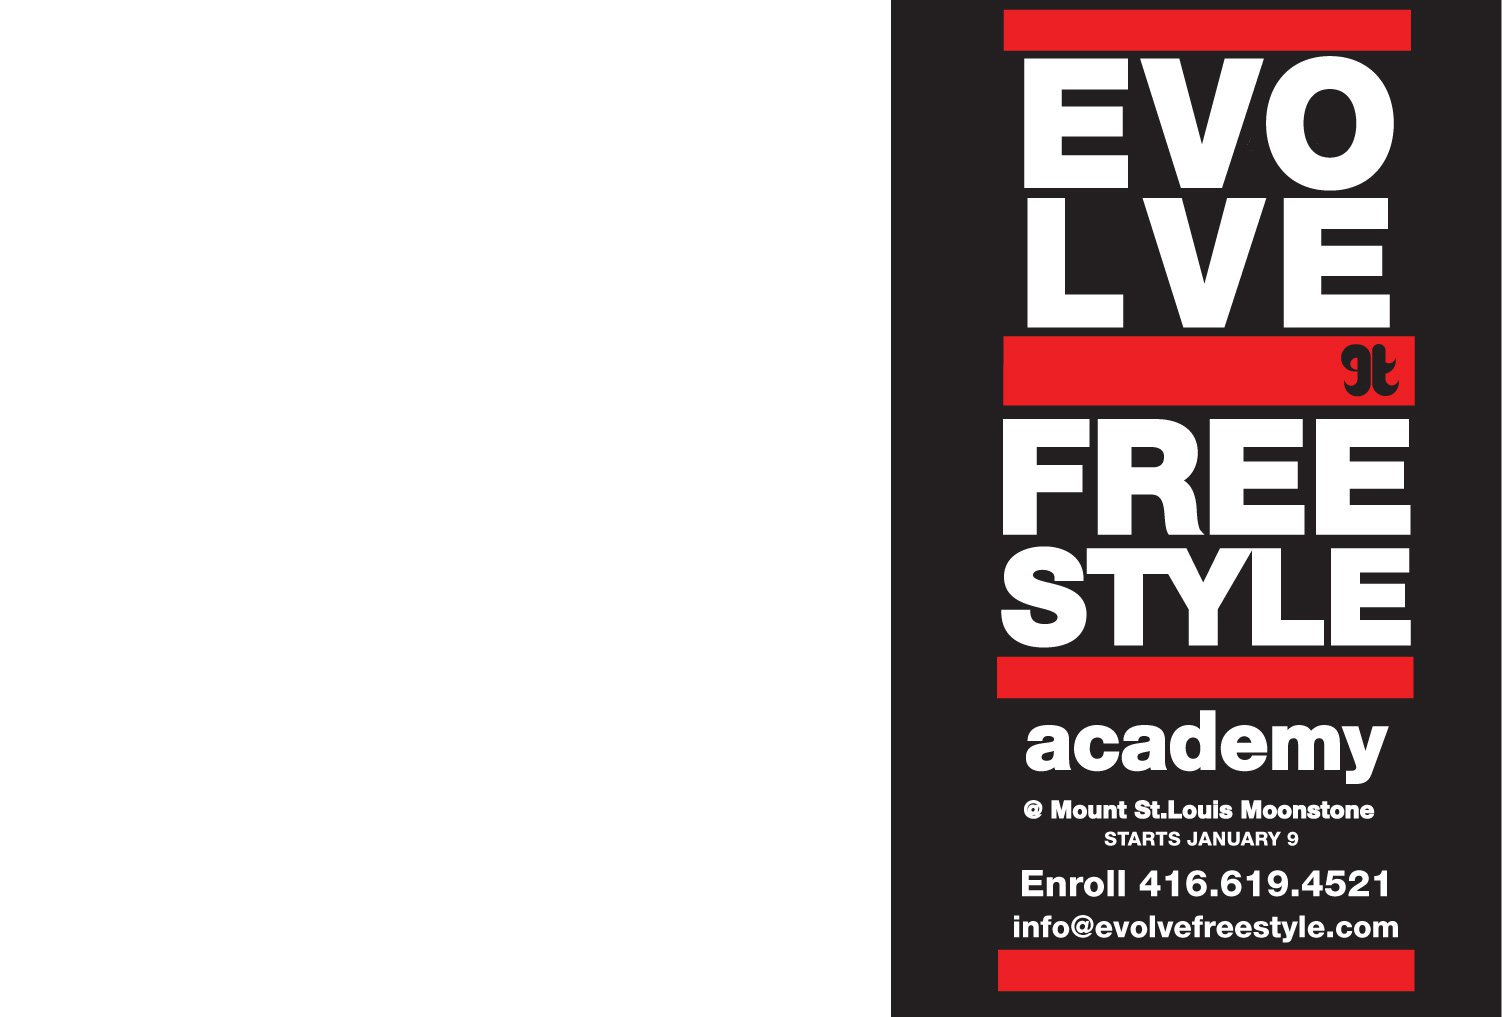 Evolve FReestyle Academy @ Mount St. Louis Moonstone